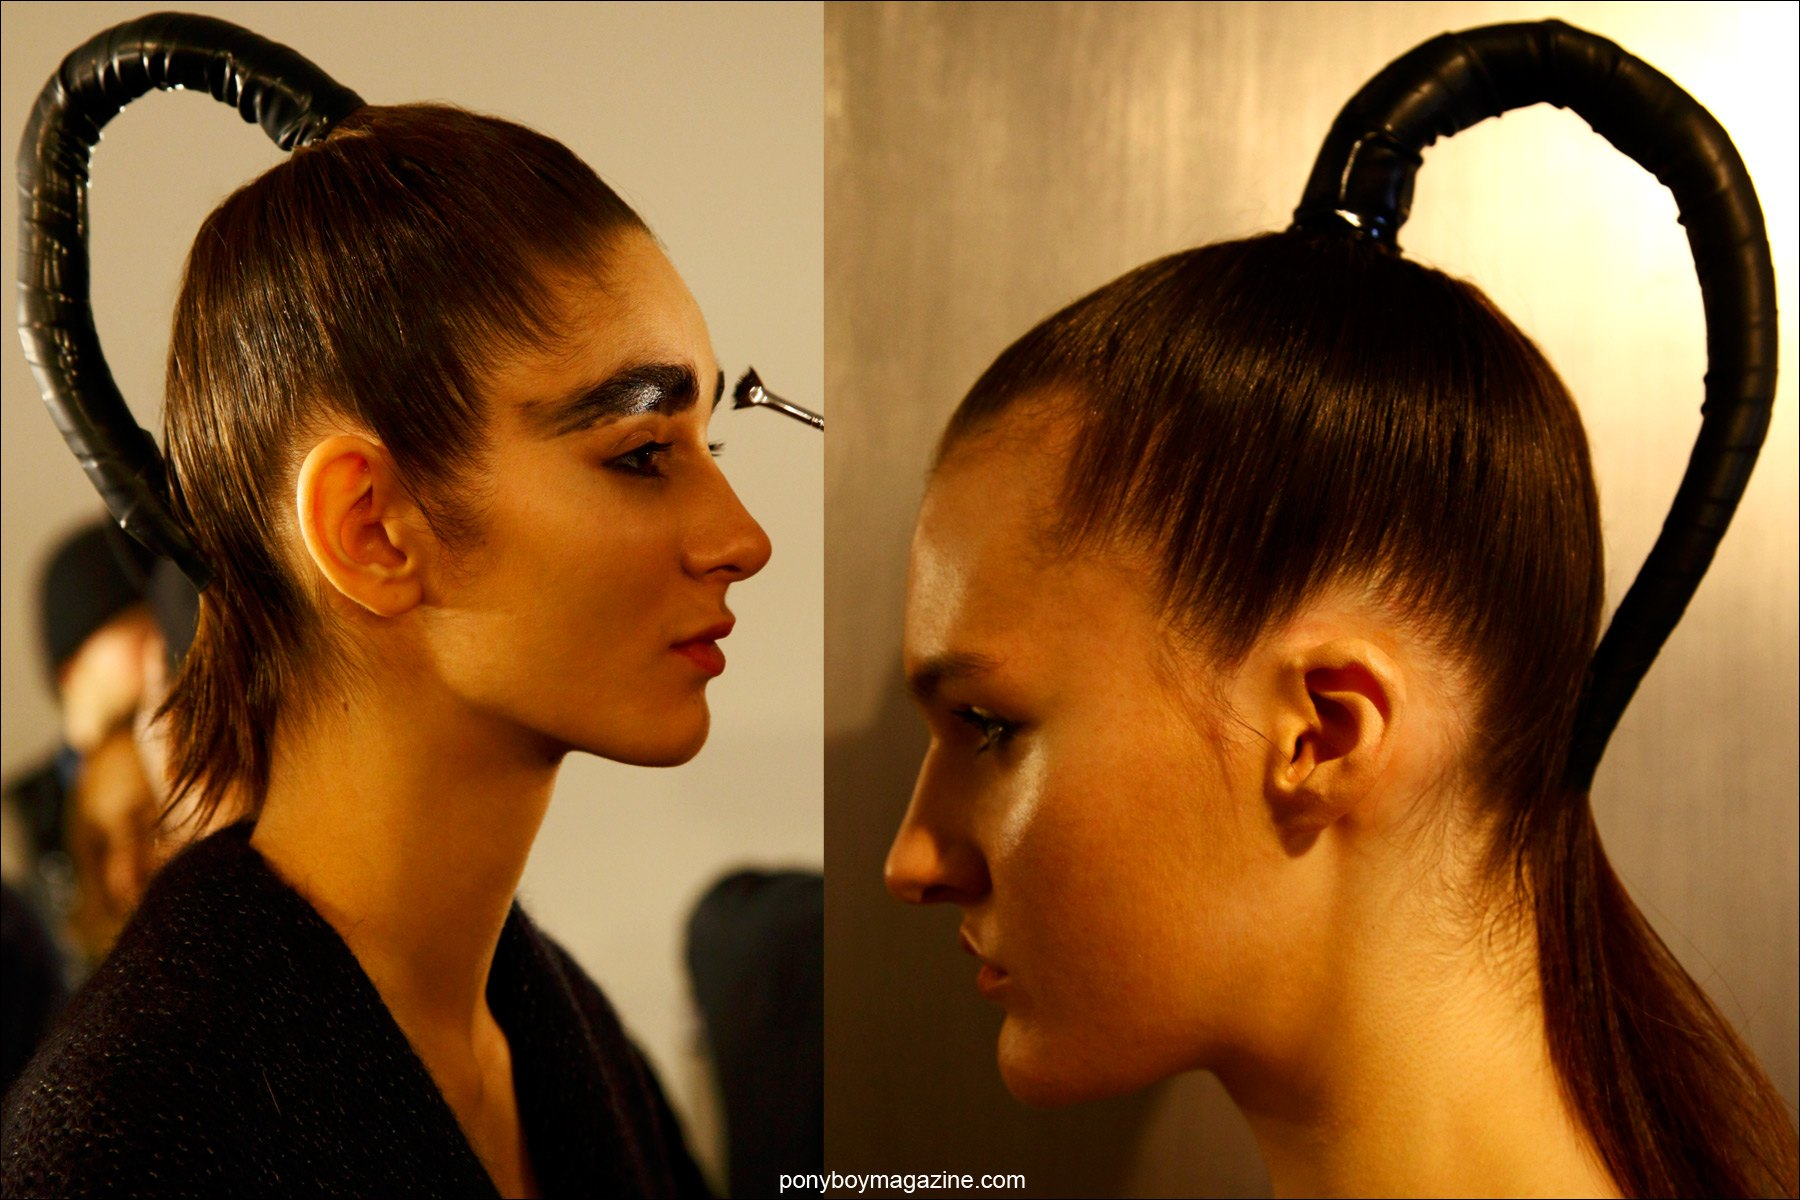 Futuristic ponytails at Chromat F/W15 collection in New York City. Photographs by Alexander Thompson for Ponyboy magazine.